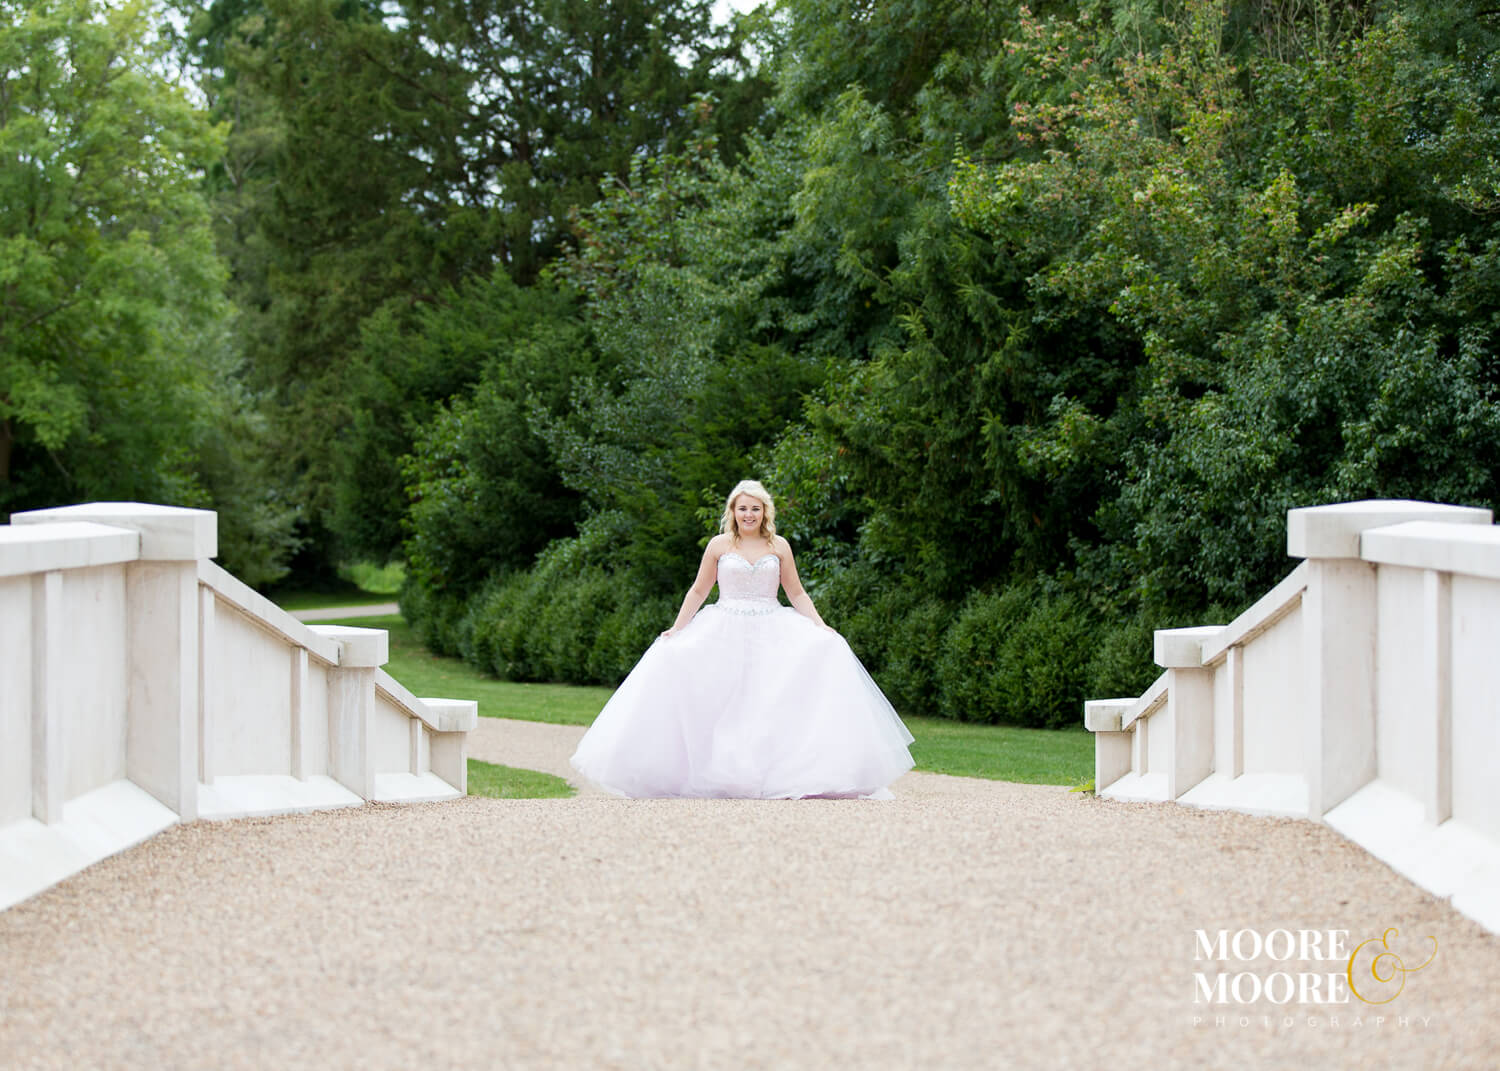 princess and fairytale style prom-year-photography-by-moore-moore-photography-hampshire